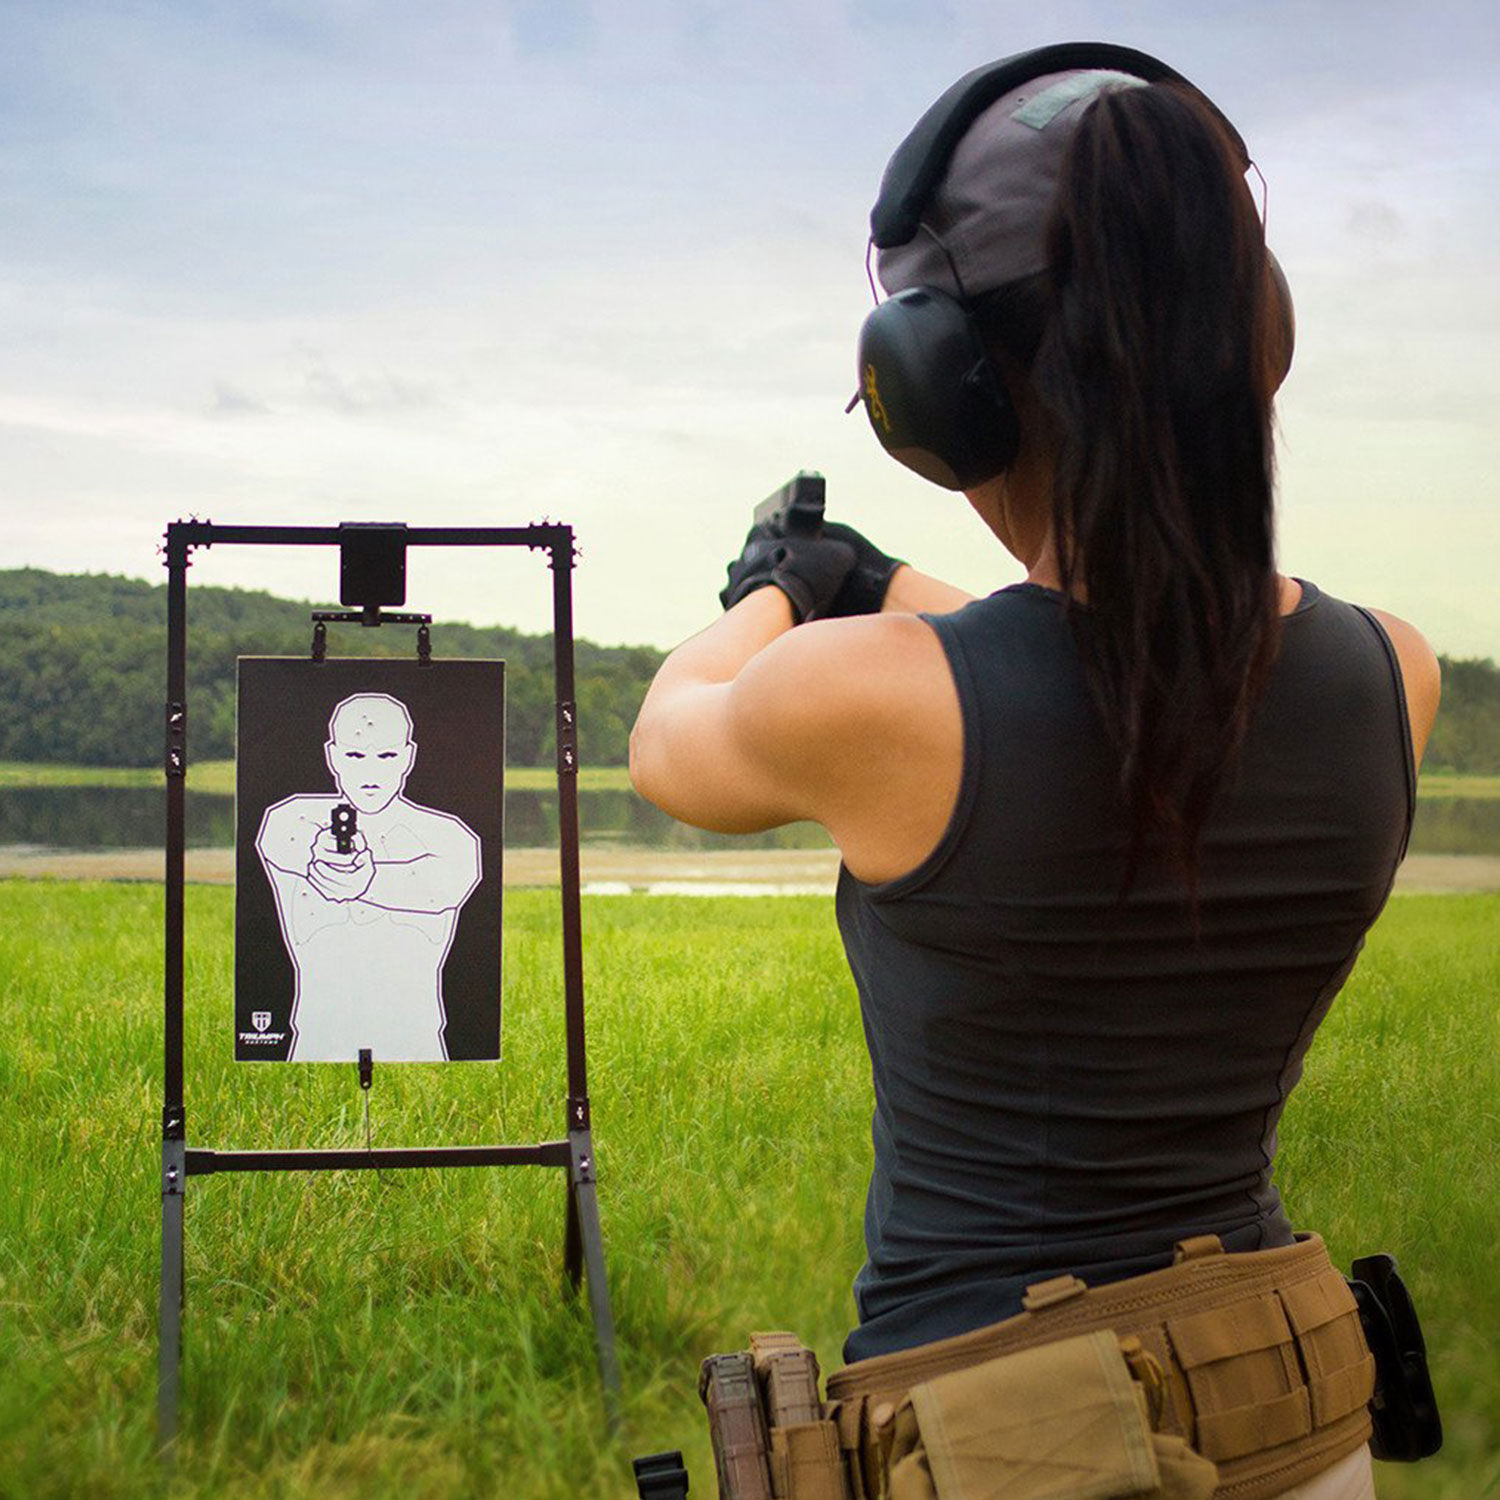 Pivotal Trainer Electronic Turning Target Systems Shooting Target by Triumph Systems